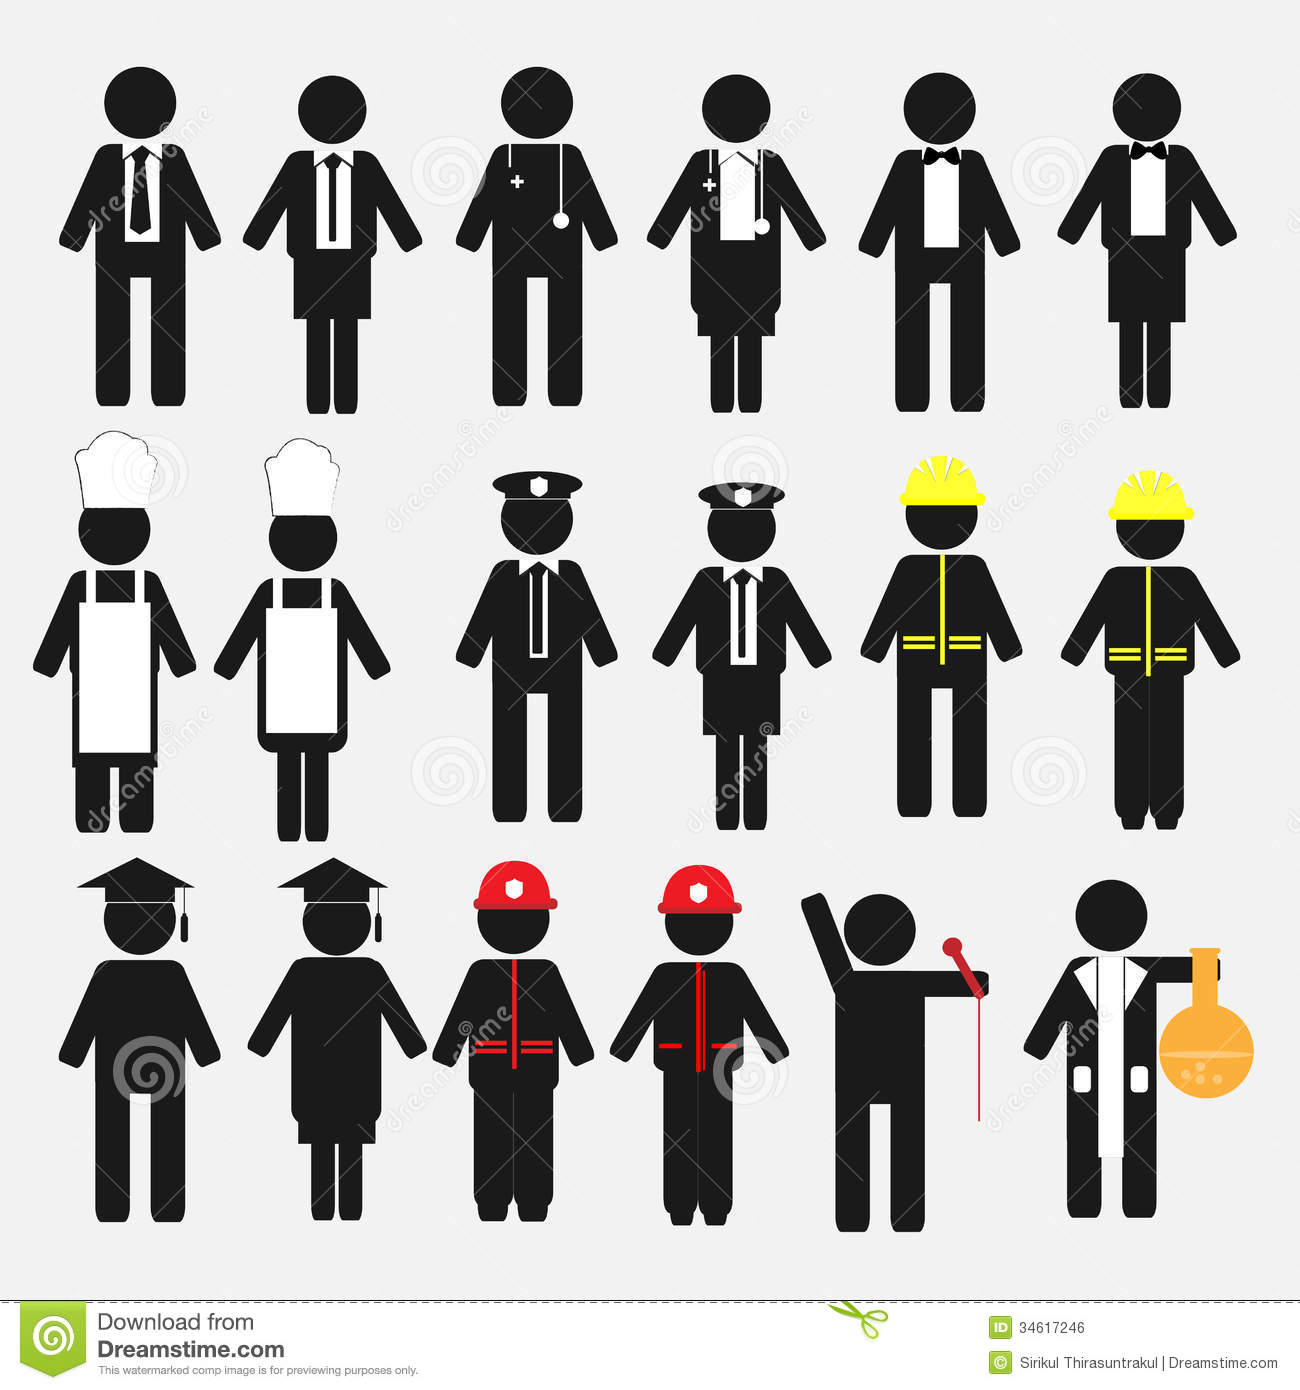 Royalty Free Stock Image Occupation Icon Set Professional Business Concept Image34617246 on stick figure on fire